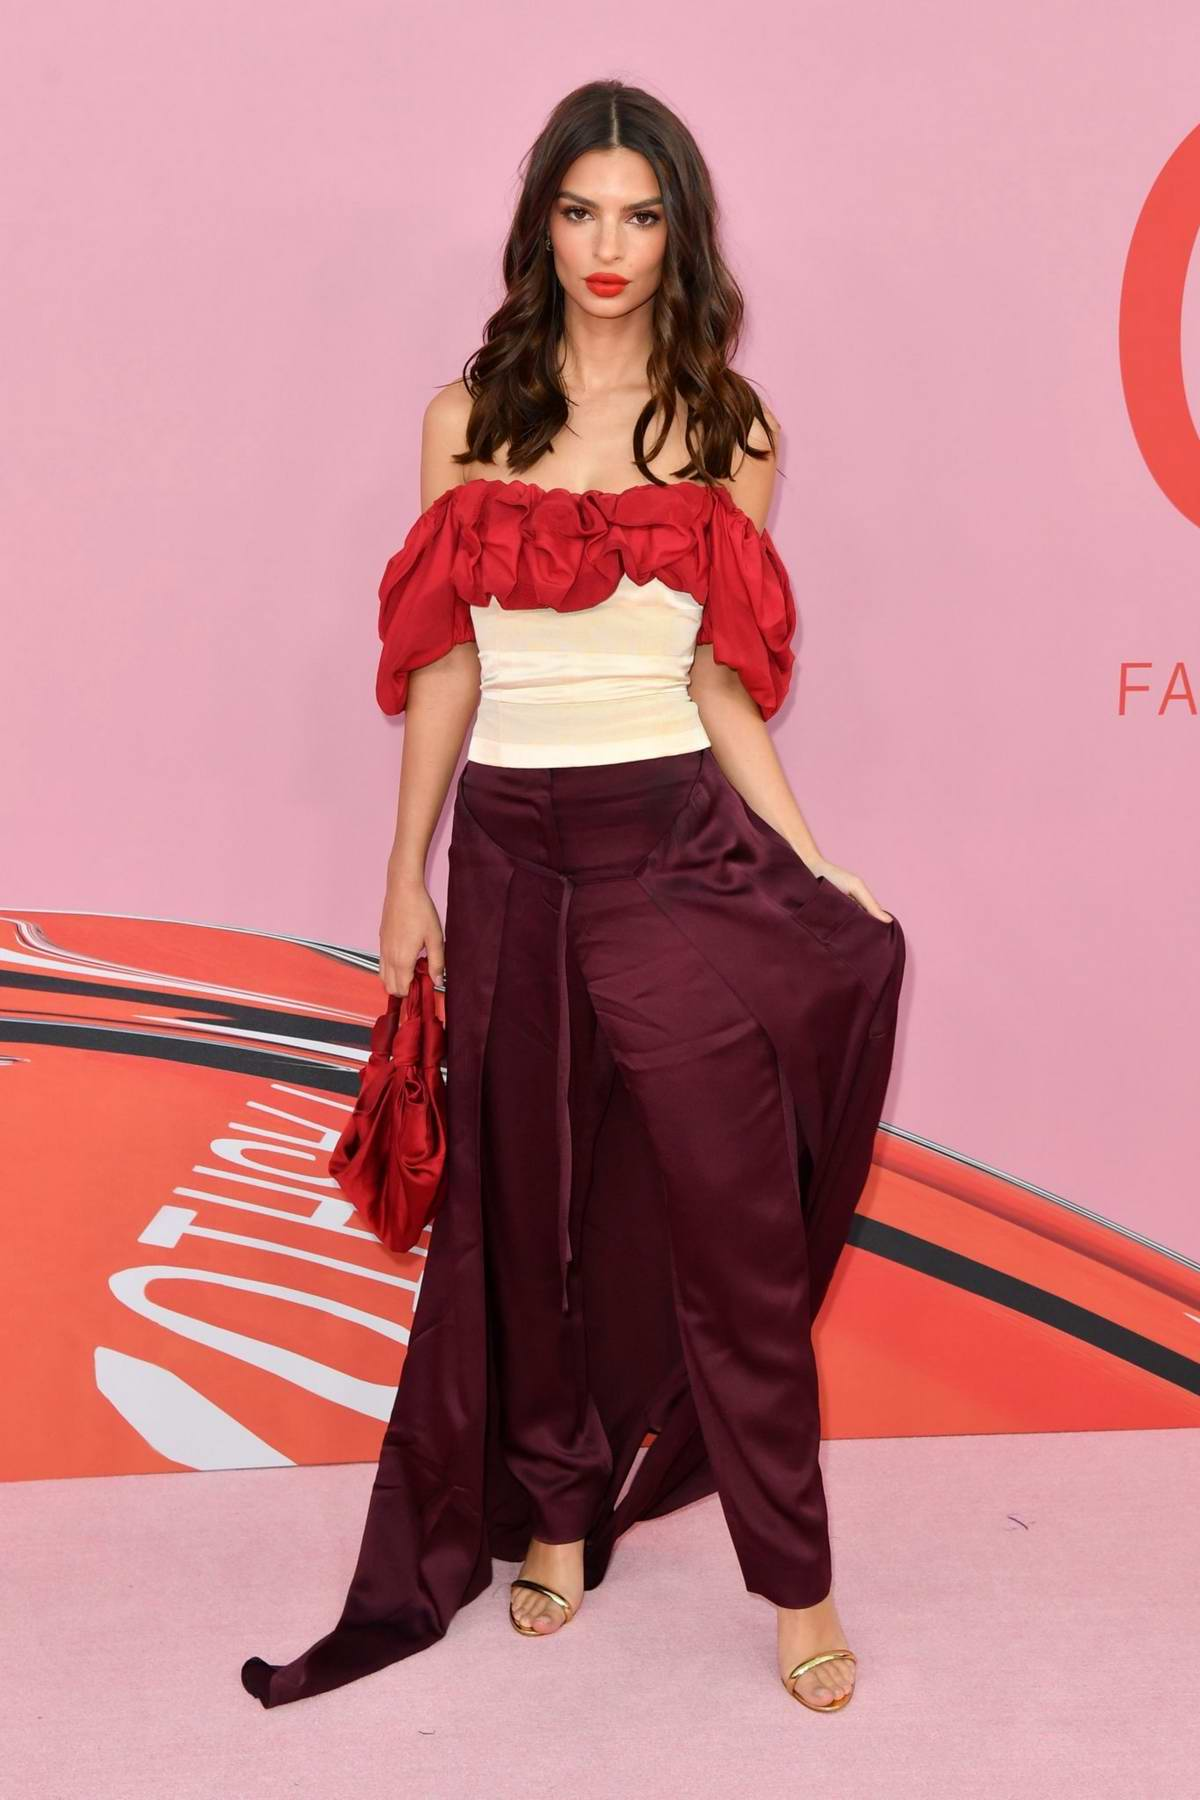 Emily Ratajkowski attends the 2019 CFDA Fashion Awards at Brooklyn Museum in New York City